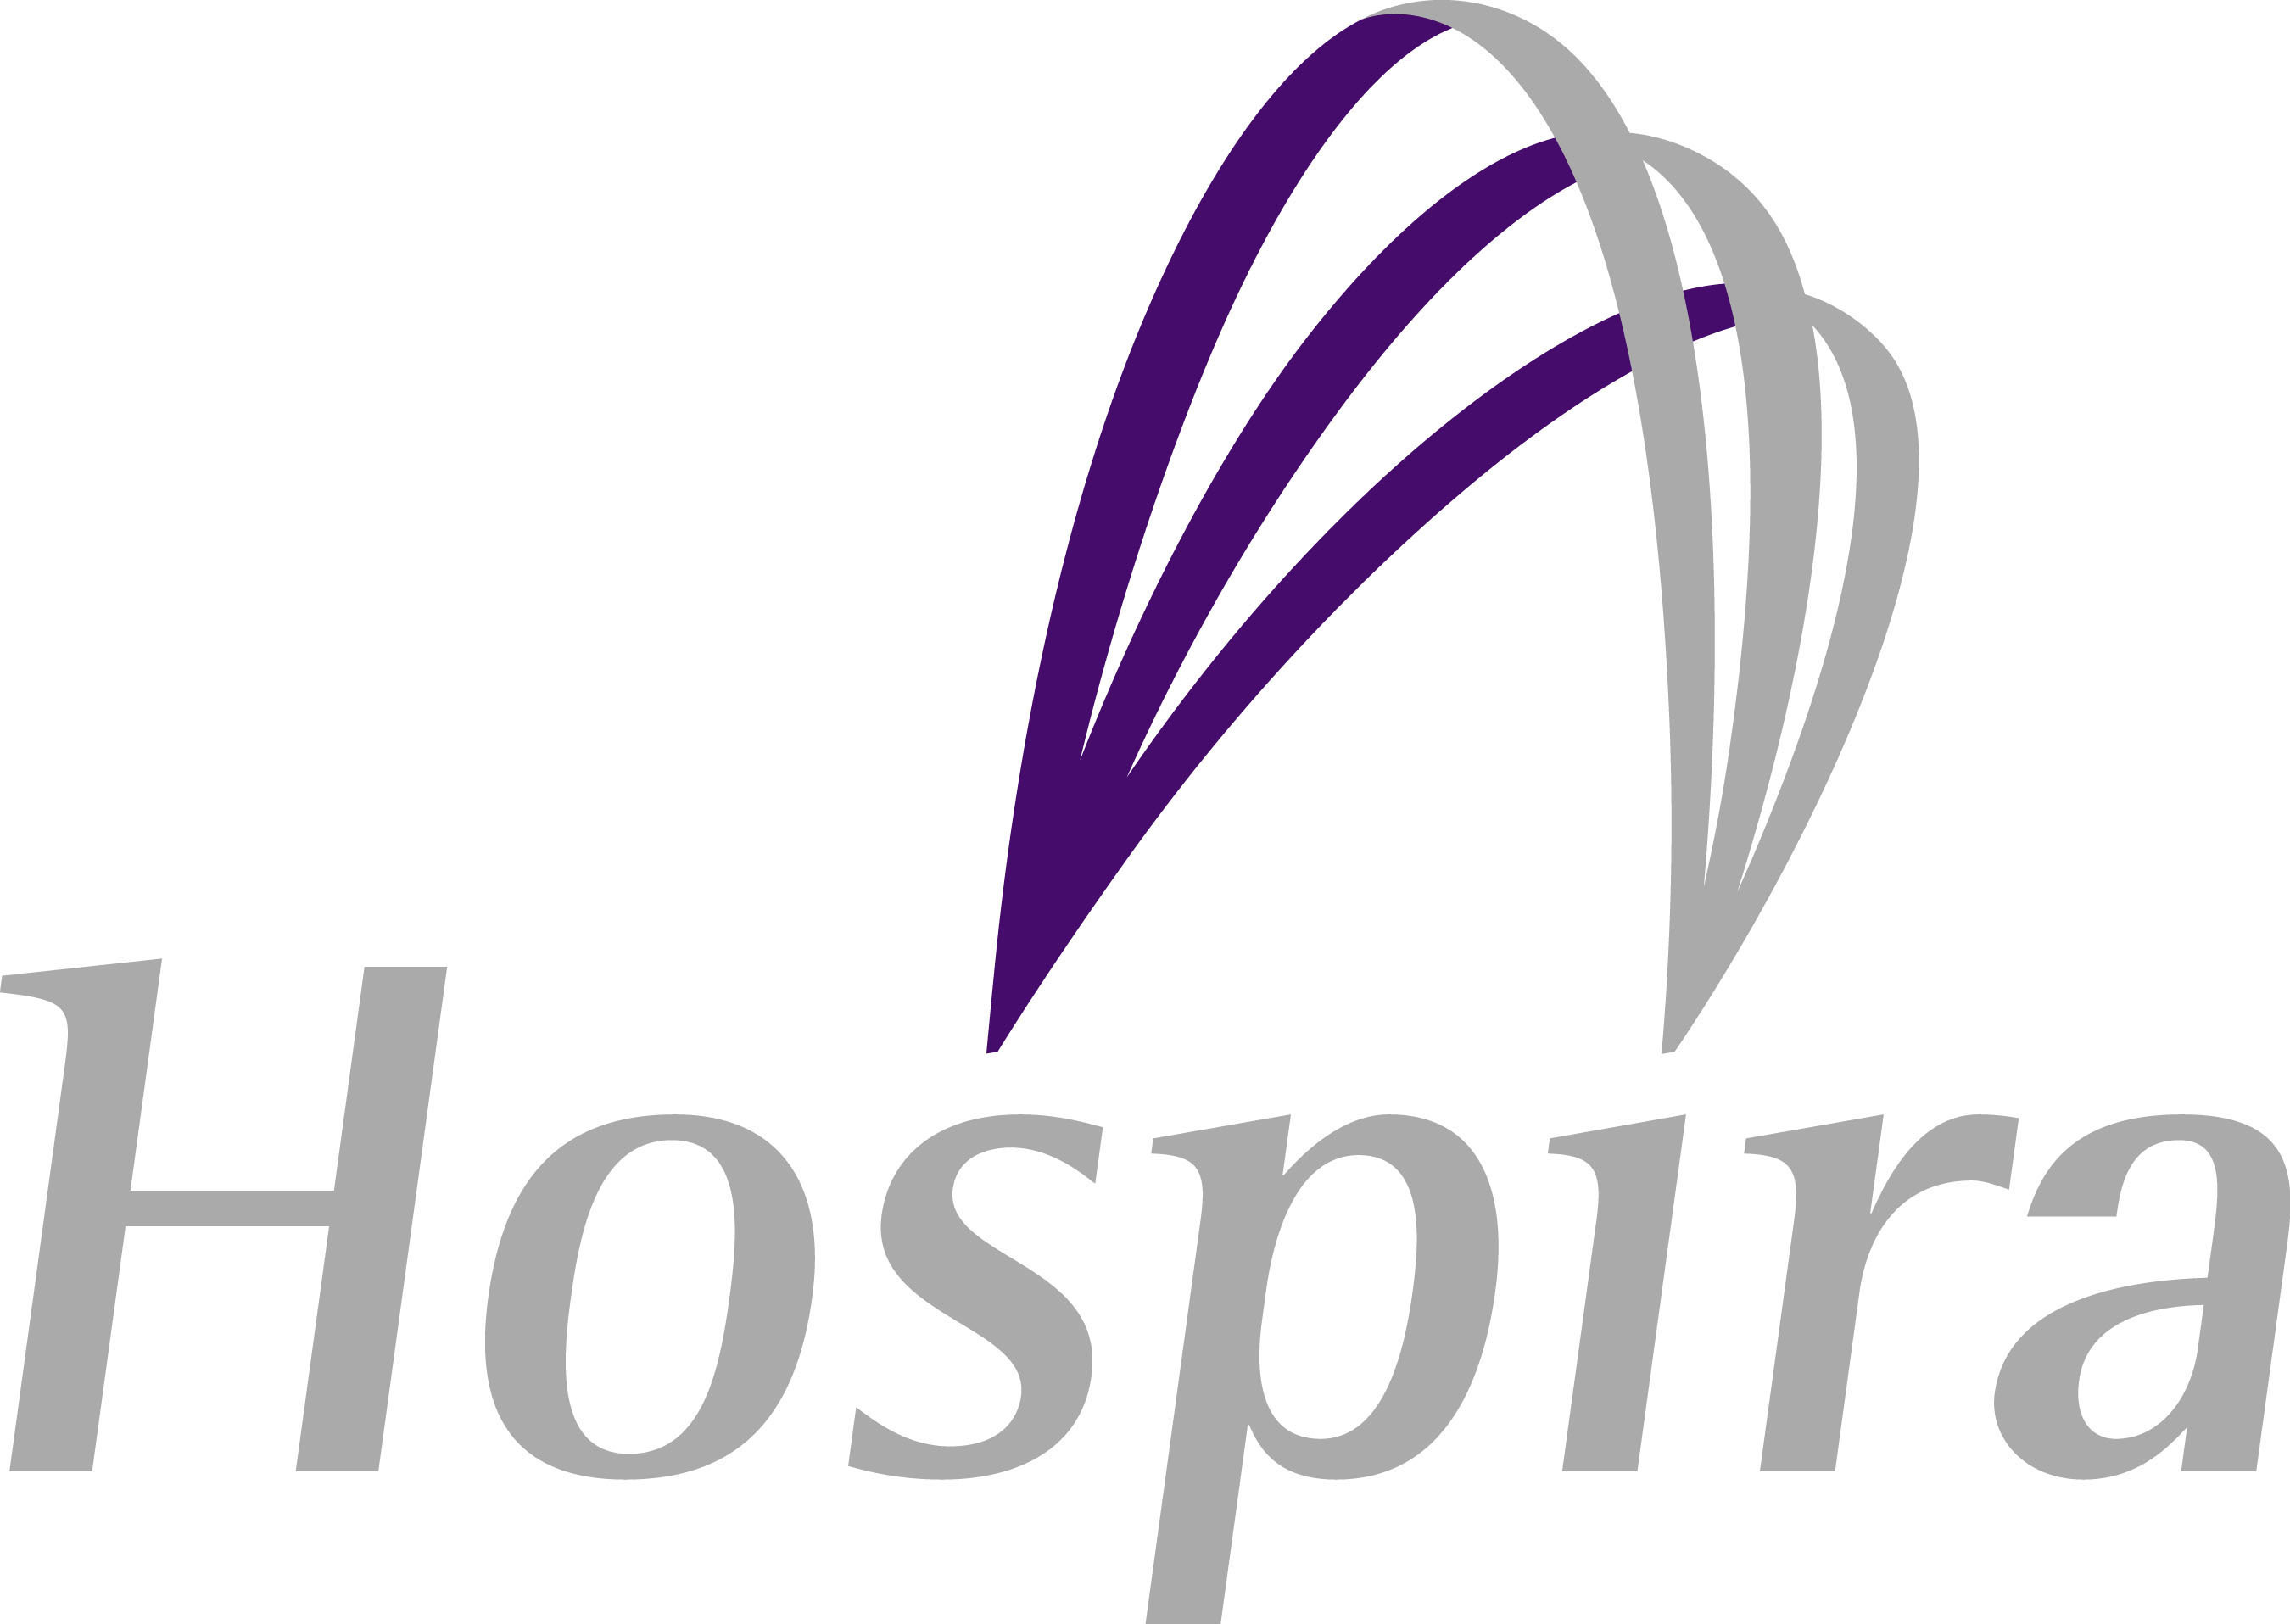 Hospira Receives U.S. FDA Approval of Proprietary Analgesic Dyloject™(diclofenac sodium) Injection